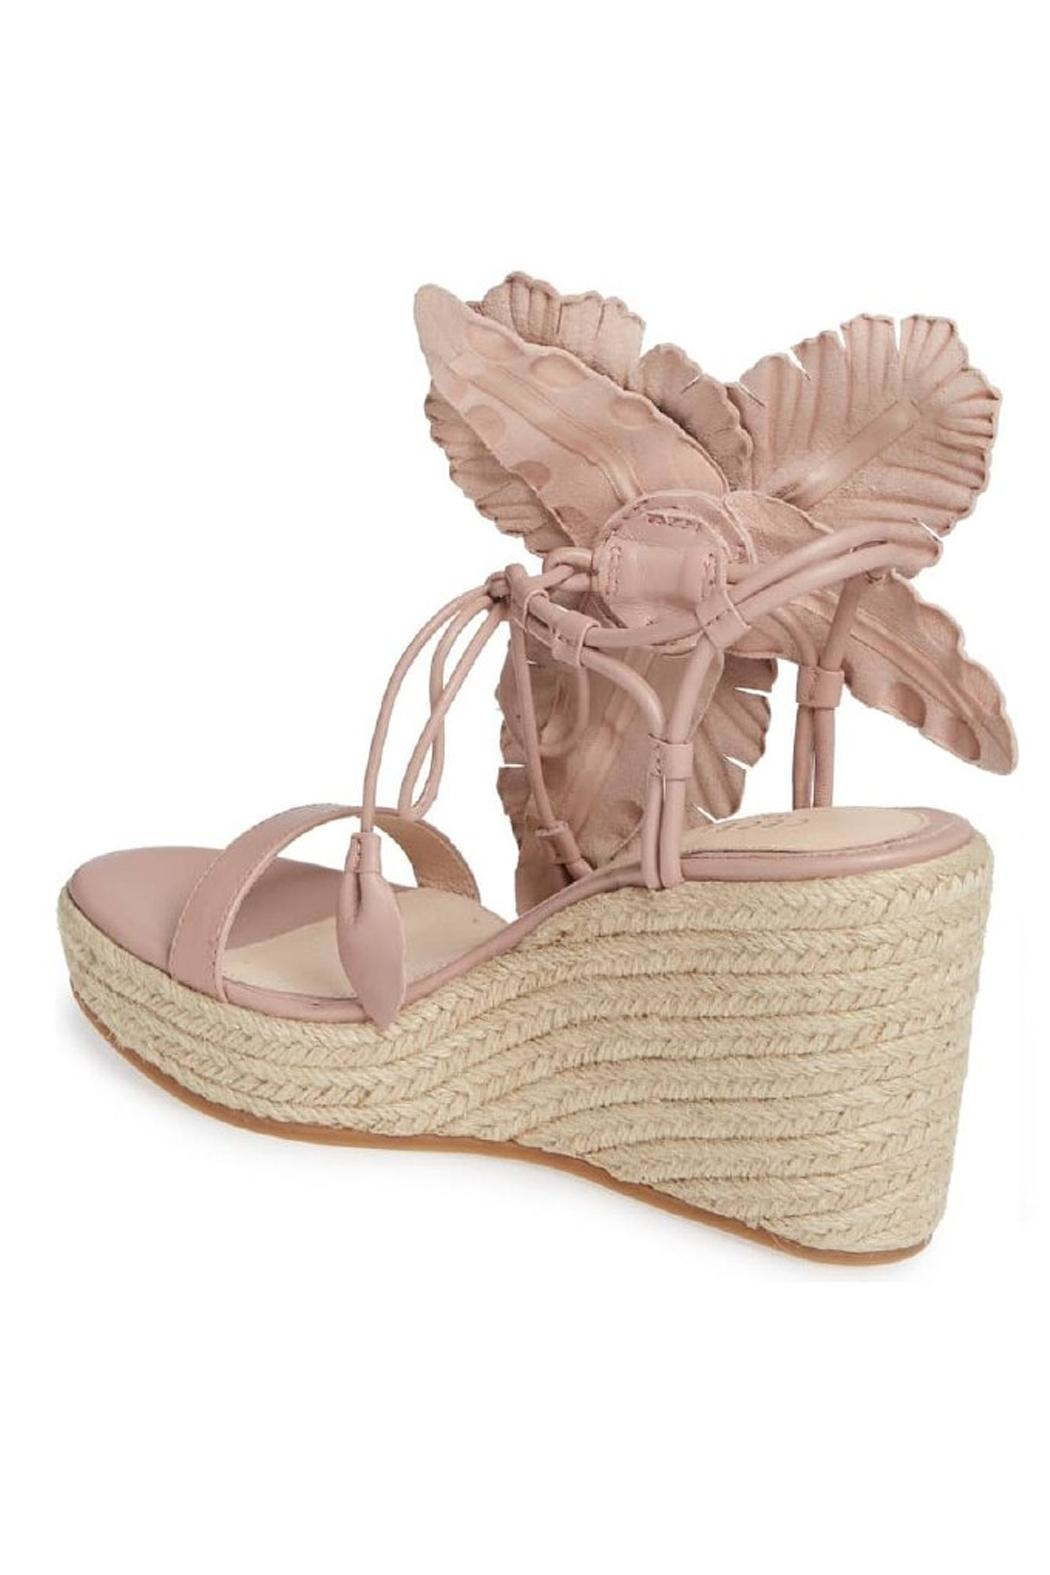 Cecelia New York Floral Espadrille Wedges - Front Full Image